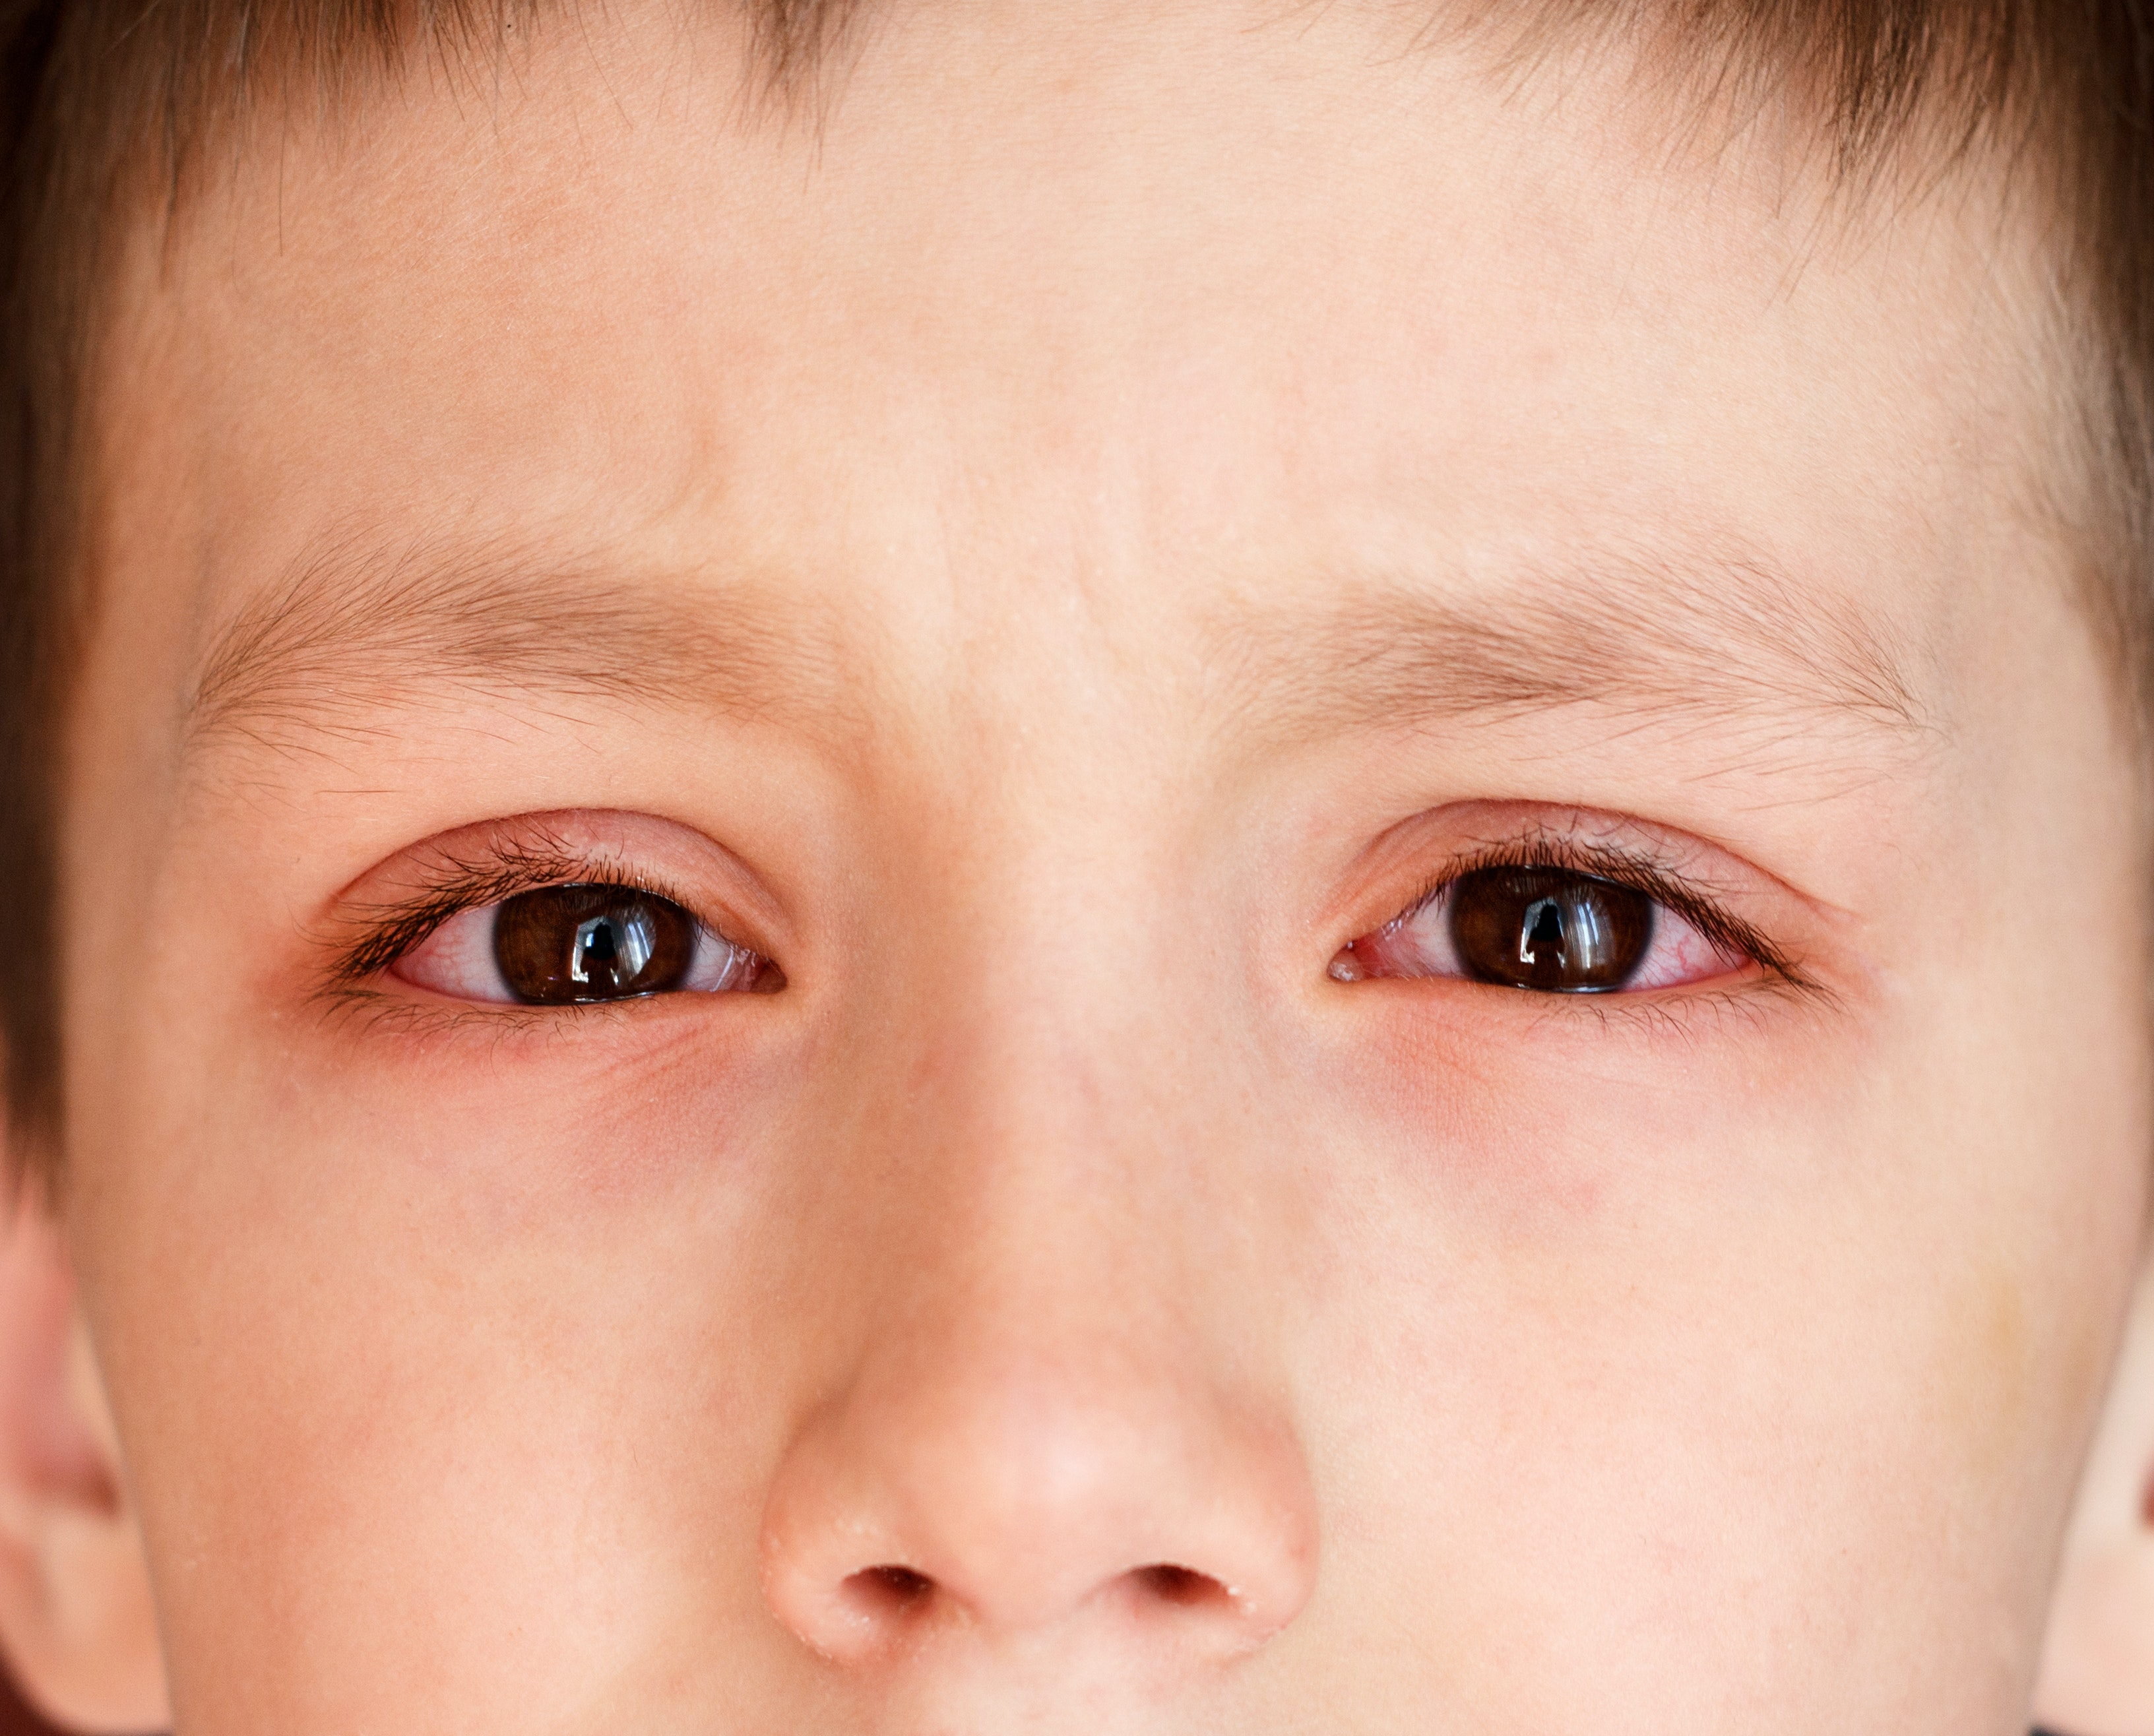 An image depicting a person suffering from redness around the eye symptoms